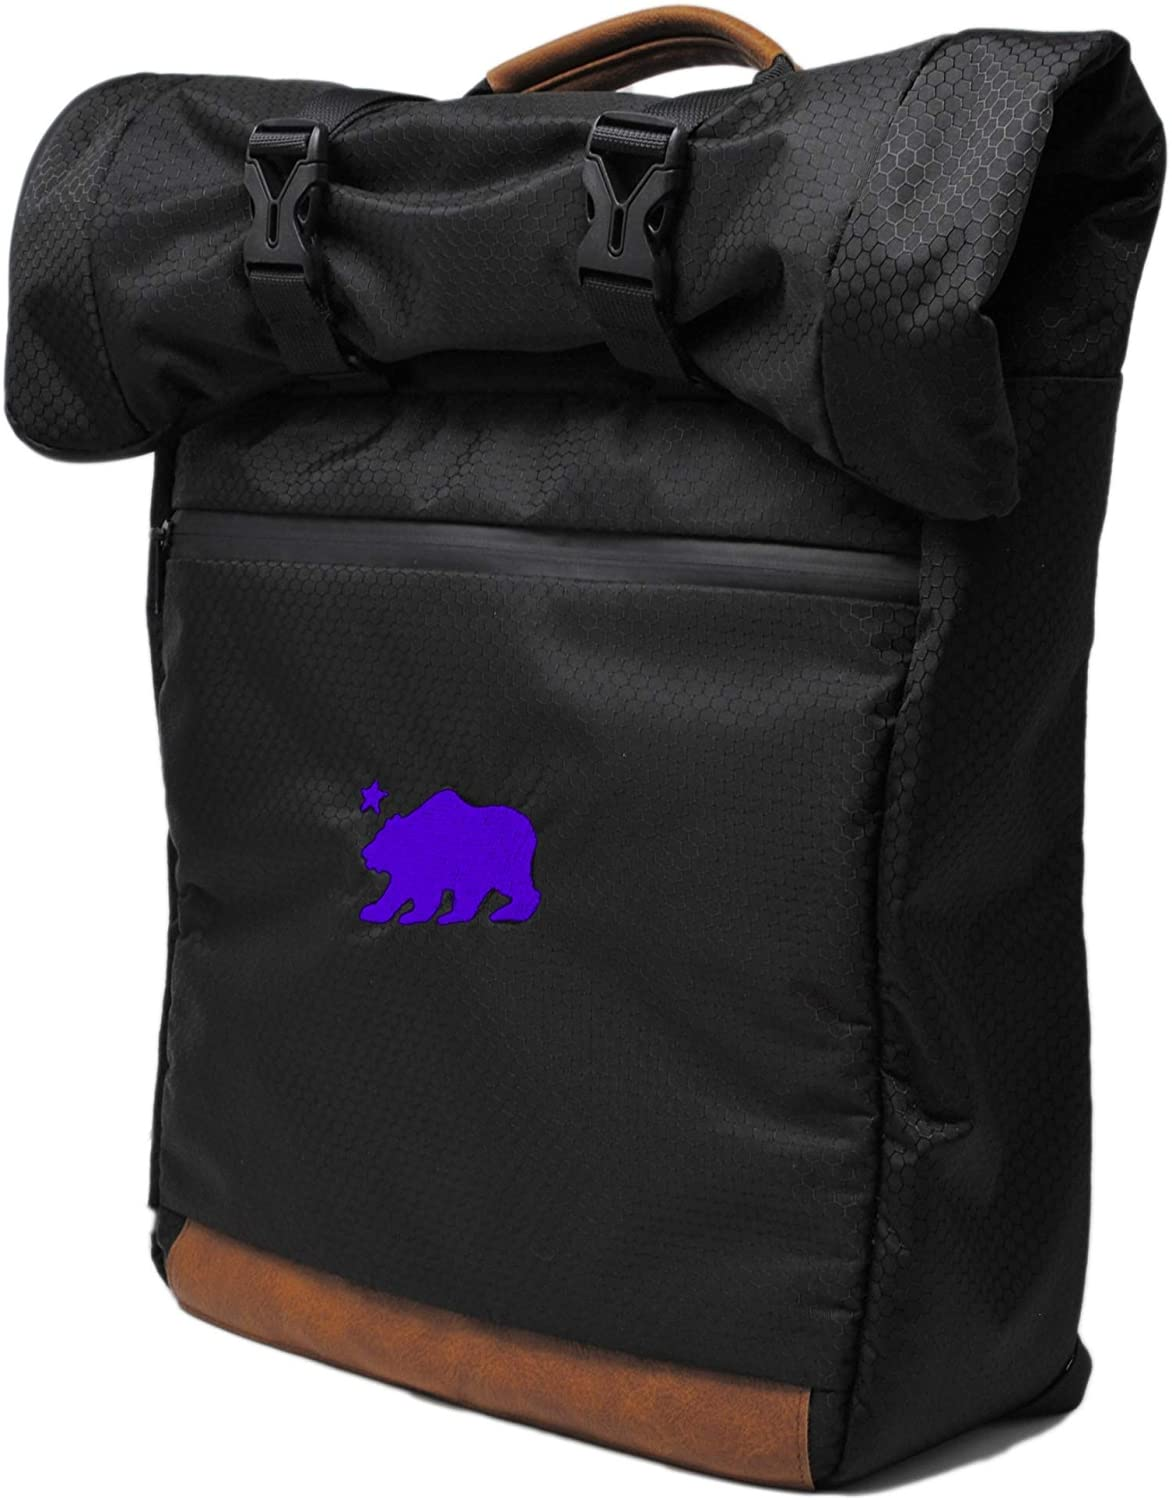 Cali Crusher 100 Smell Proof Roll Top Backpack – Water Proof – Hydroponics Black Purple